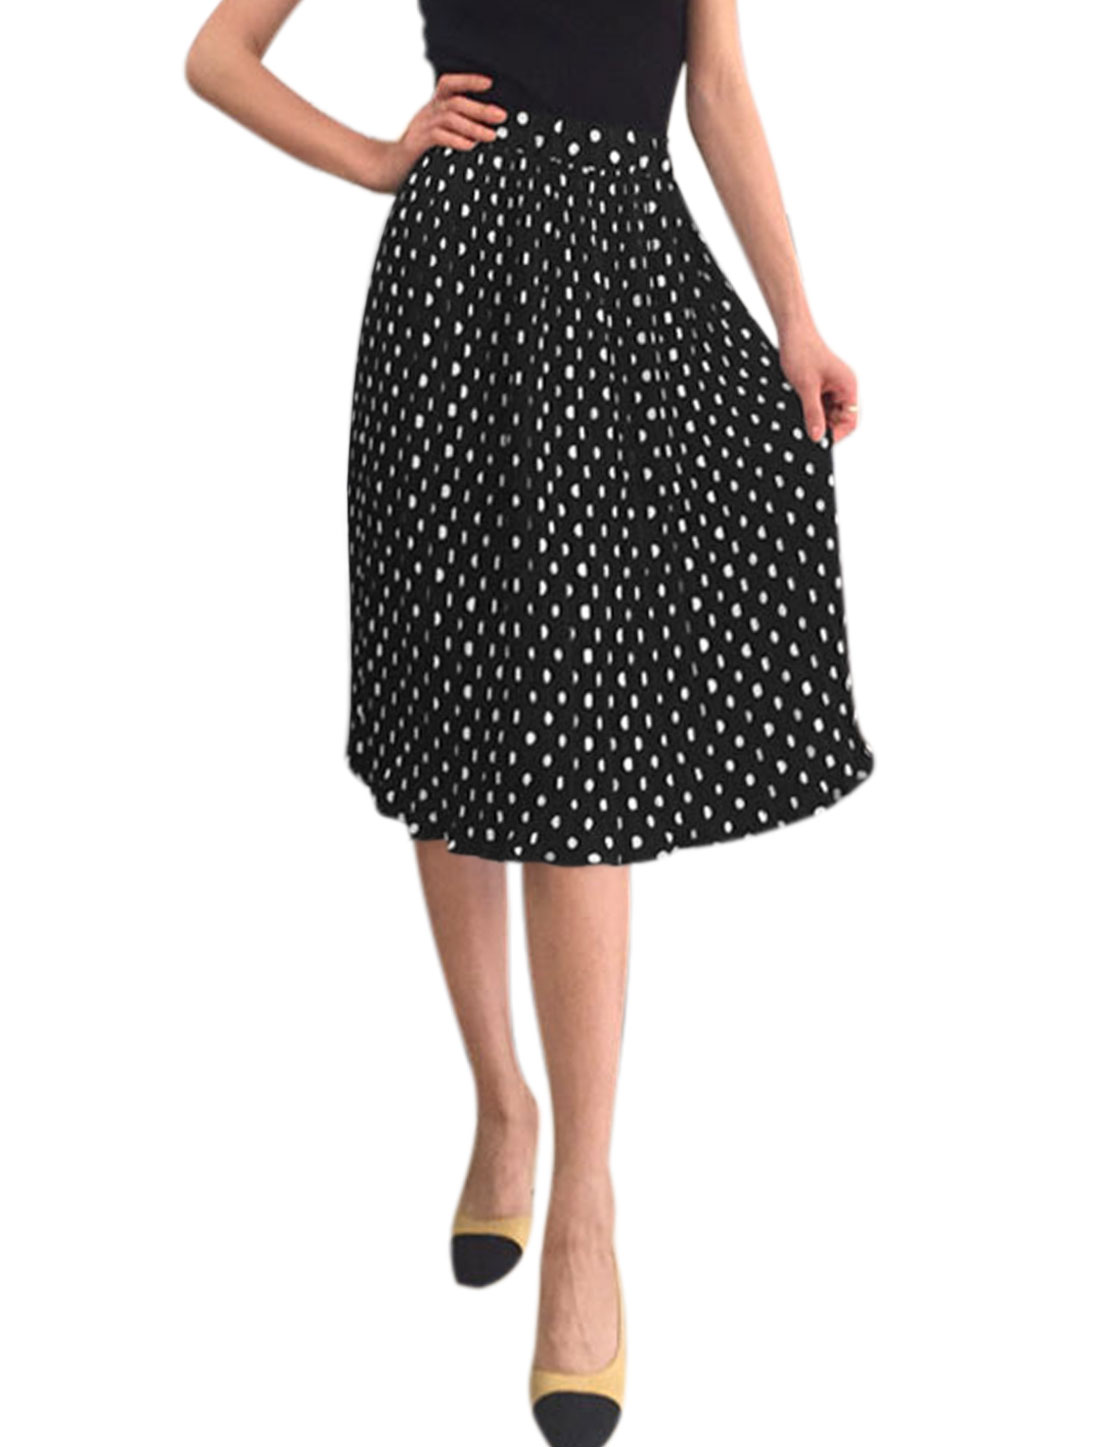 Women Elastic Waist Polka Dots Knee Length Pleated Skirt Black XS